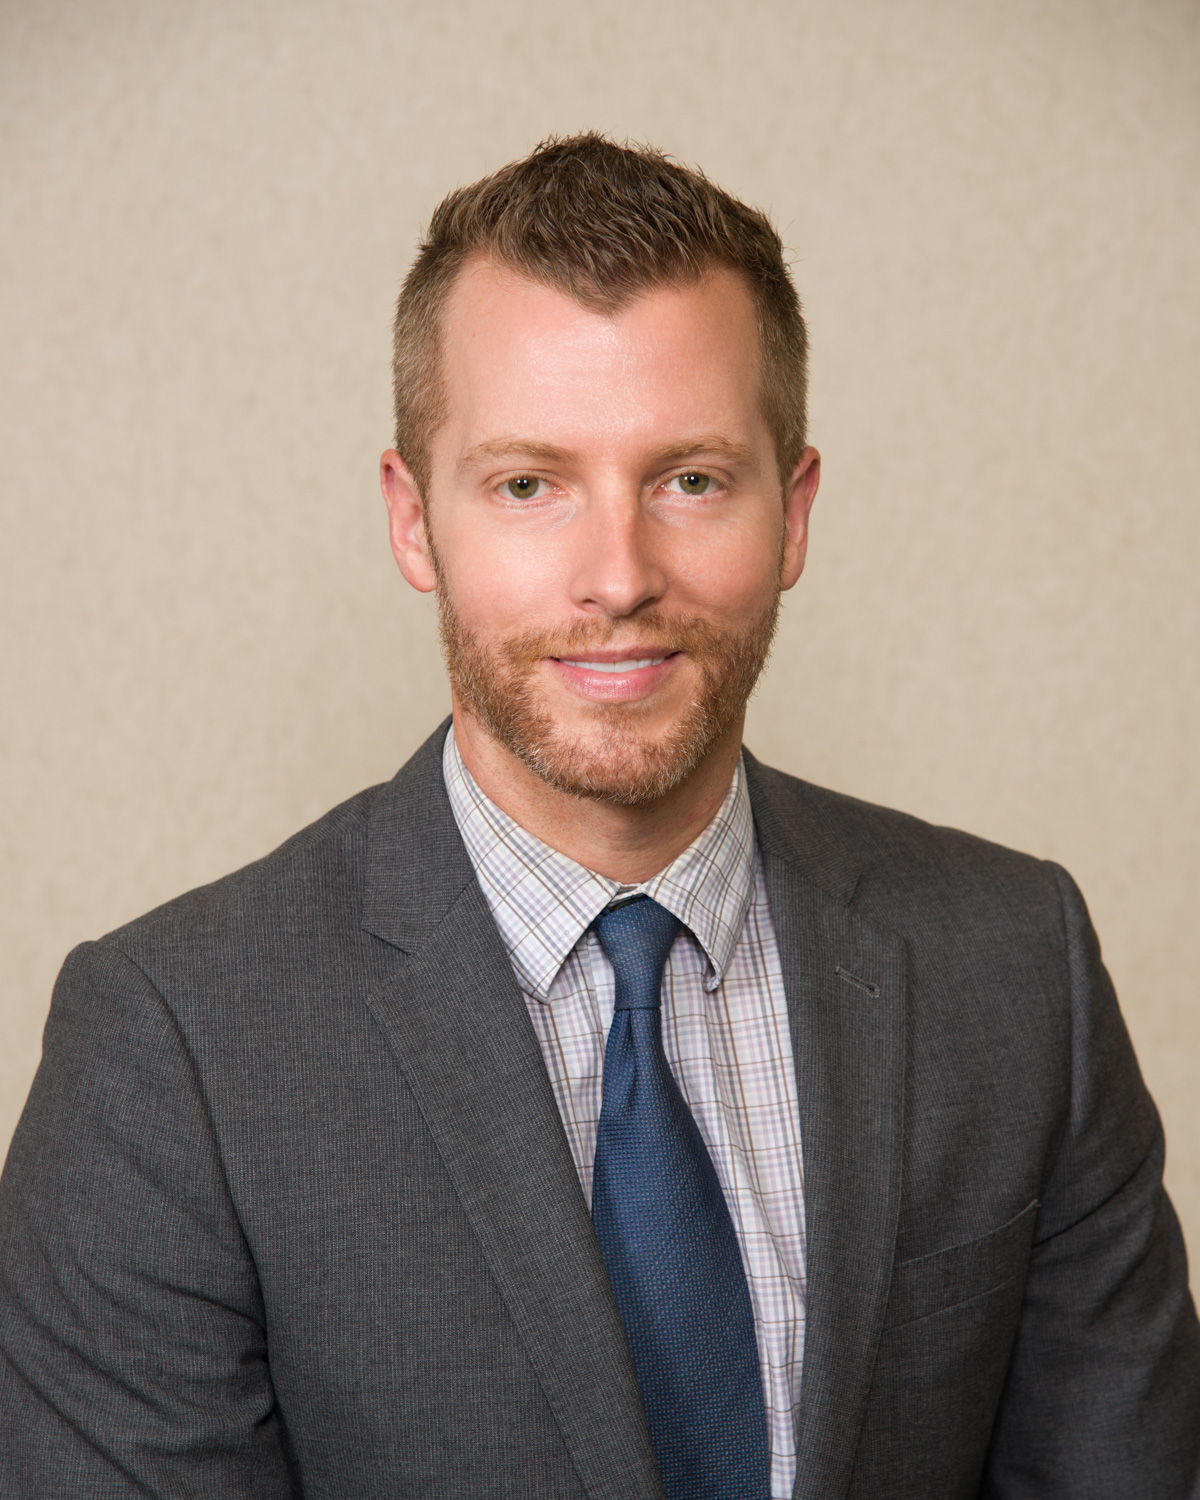 Dr. Daniel W. Stults at Stults Family Dentistry